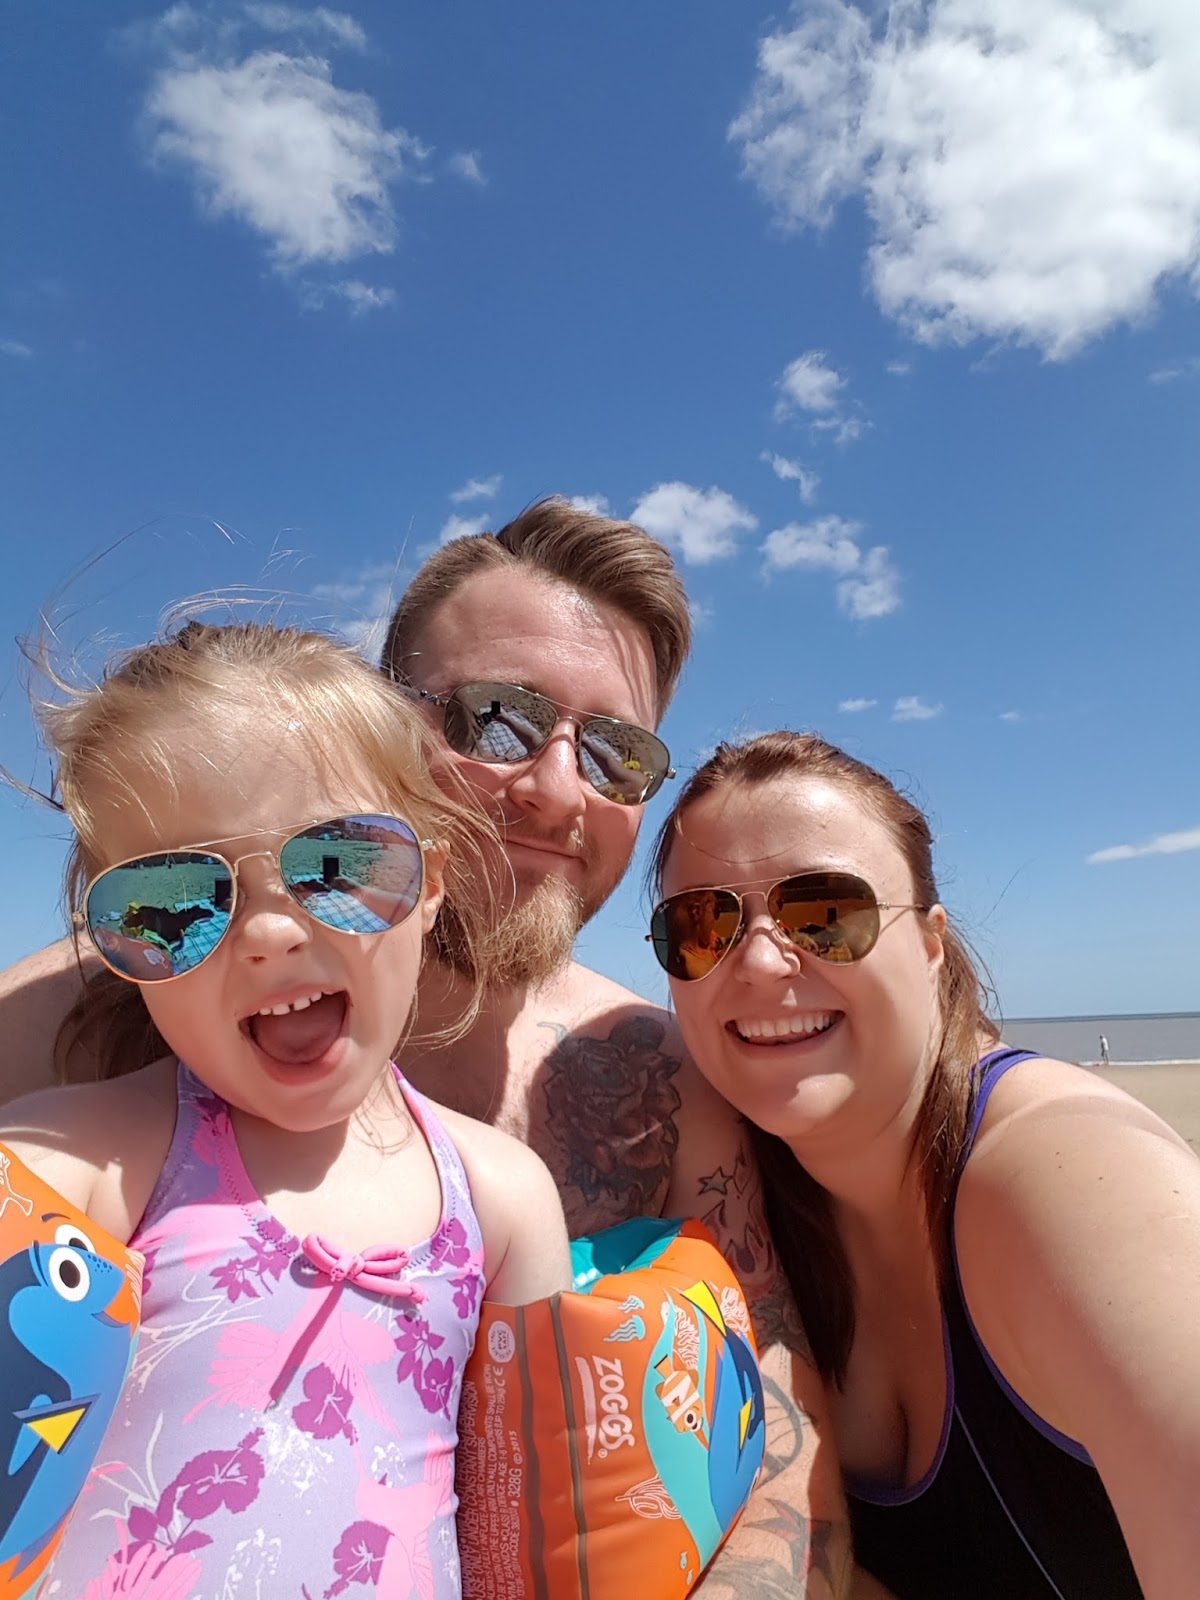 Frinton-on-sea - one of best sandy beaches near to London. Taking a family selfie by the seaside and sharing lots of pictures of Frinton beach.